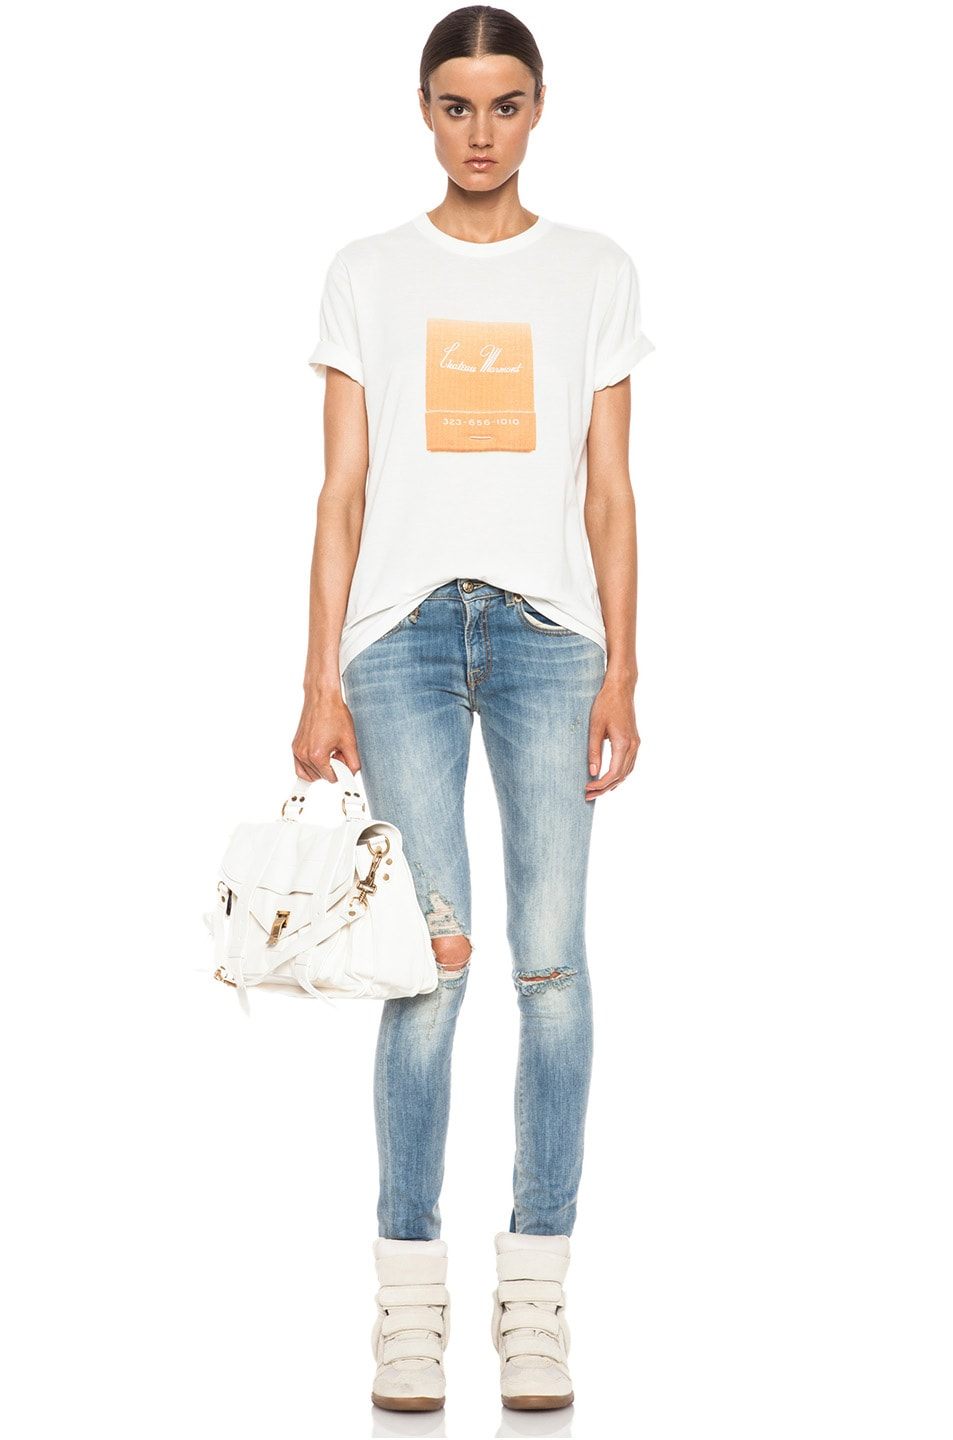 4f60c12780e Image 5 of Band of Outsiders Chateau Marmont Cotton Tee in White